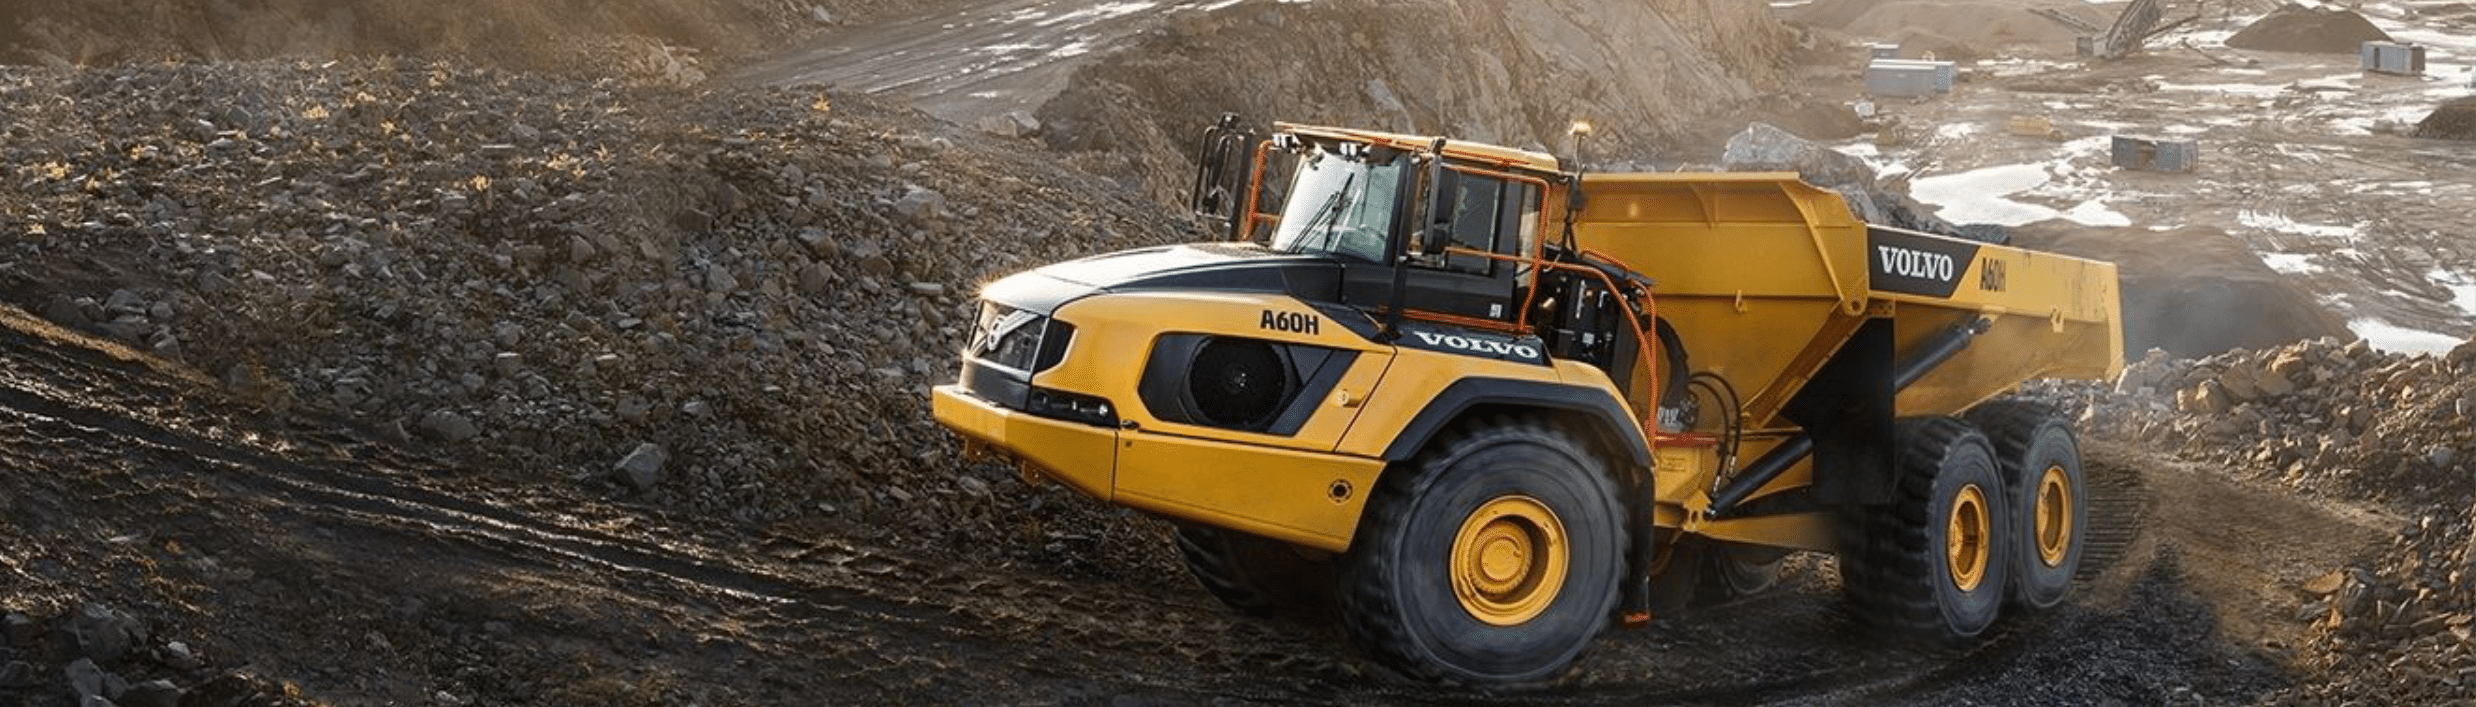 Volvo Earthmoving